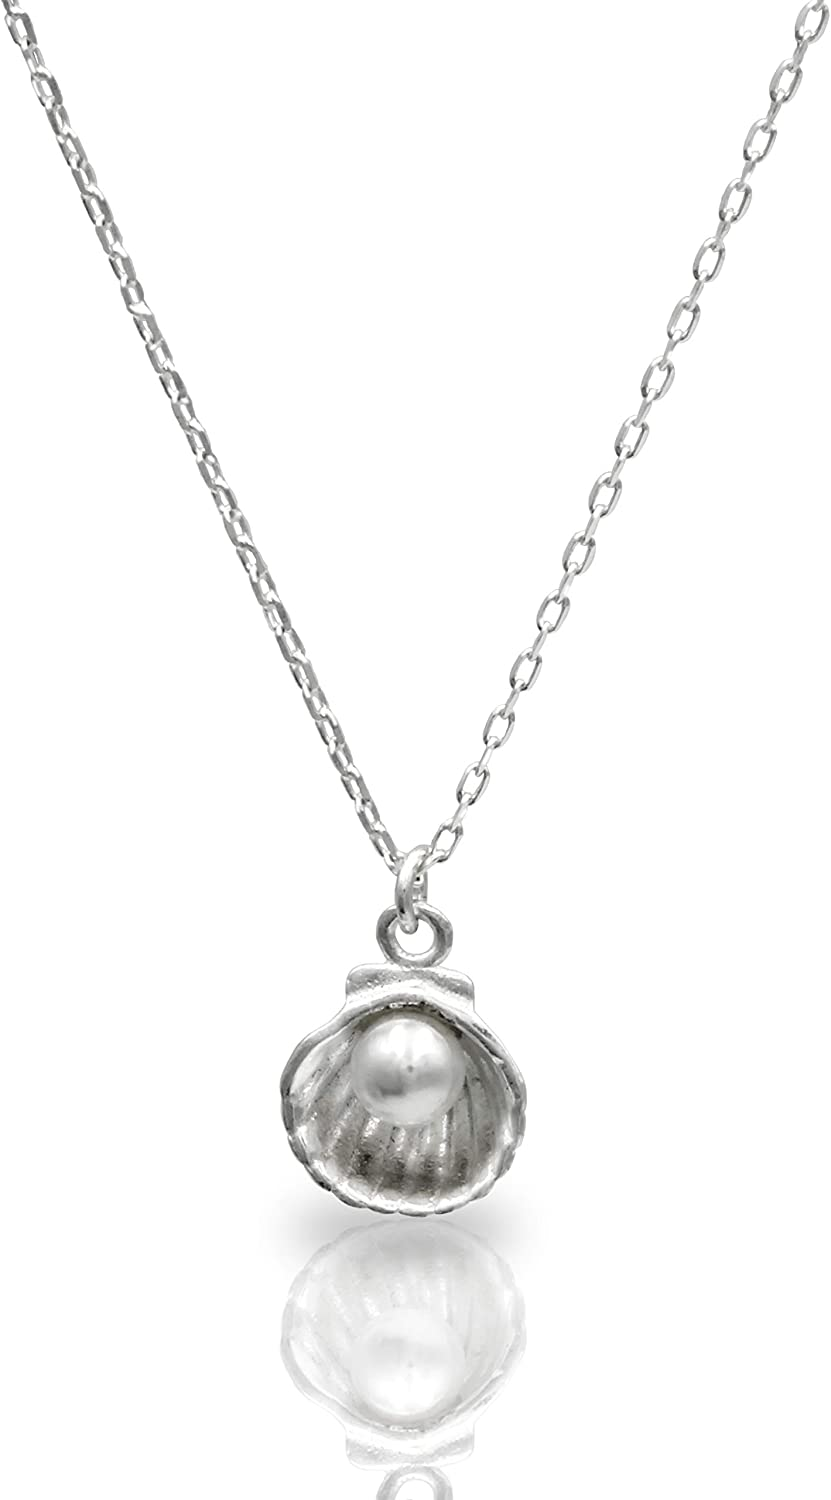 GGOMJI 925 Sterling Silver Hypoallergenic Statement Necklace with Chain for Women